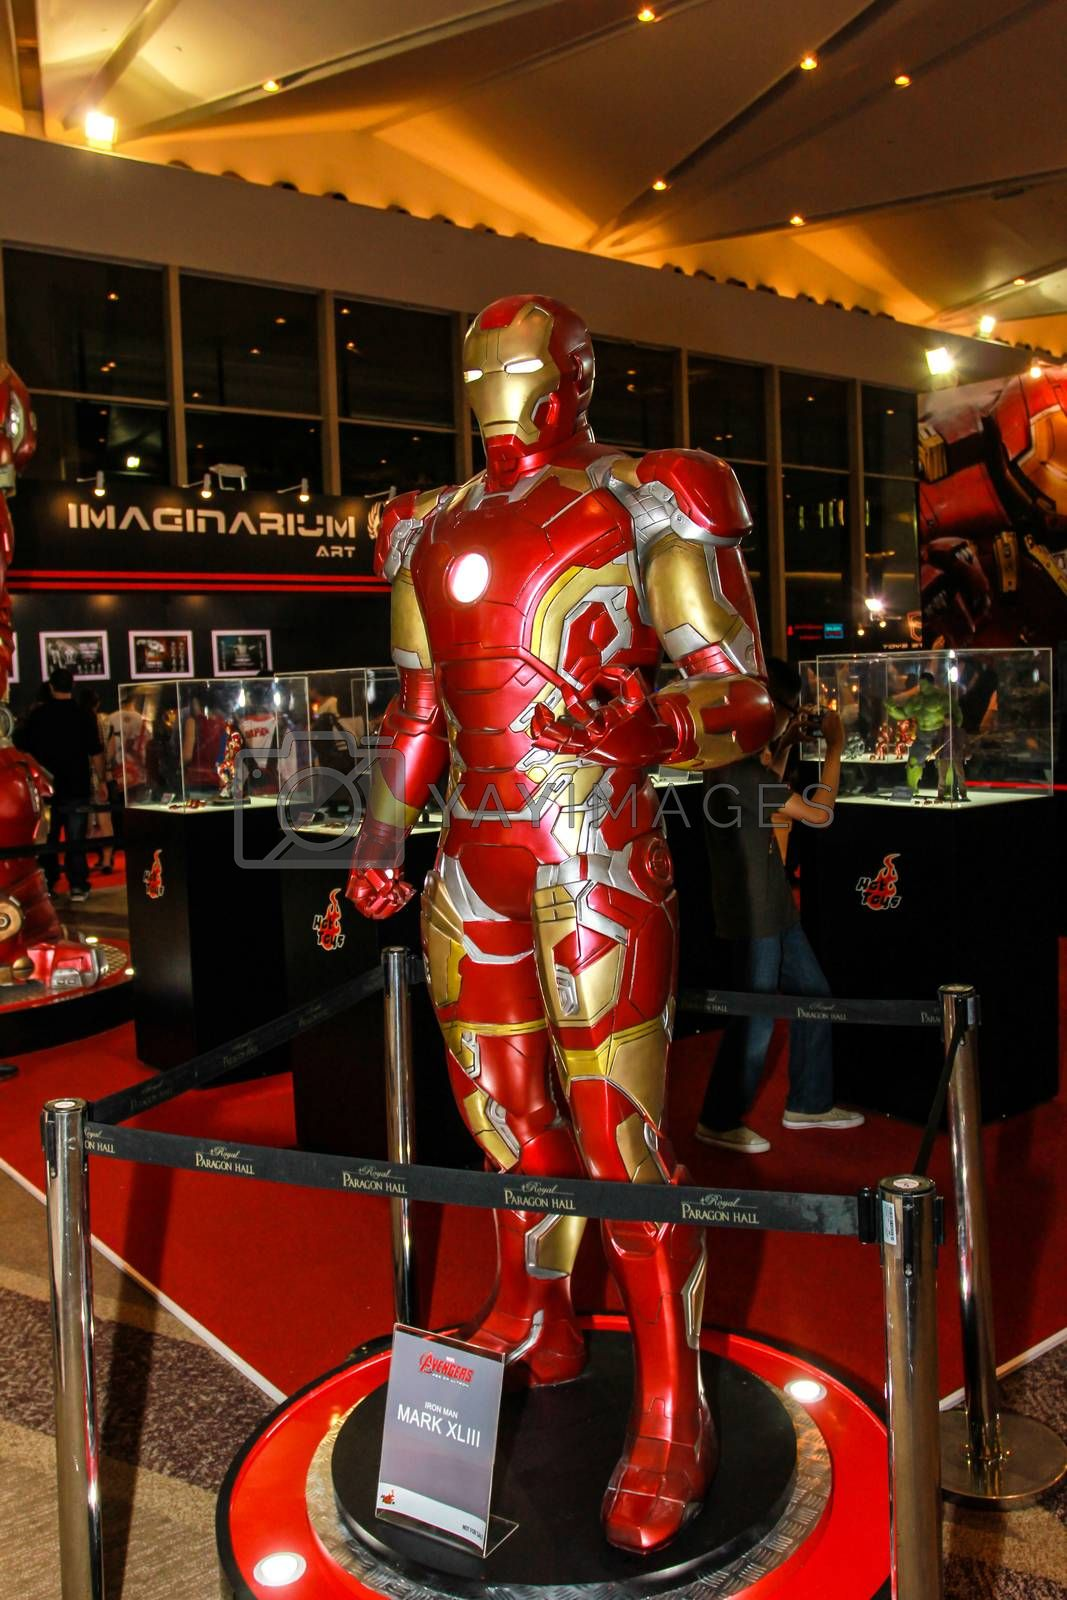 Royalty free image of A model of the character Iron Man from the movies and comics by redthirteen